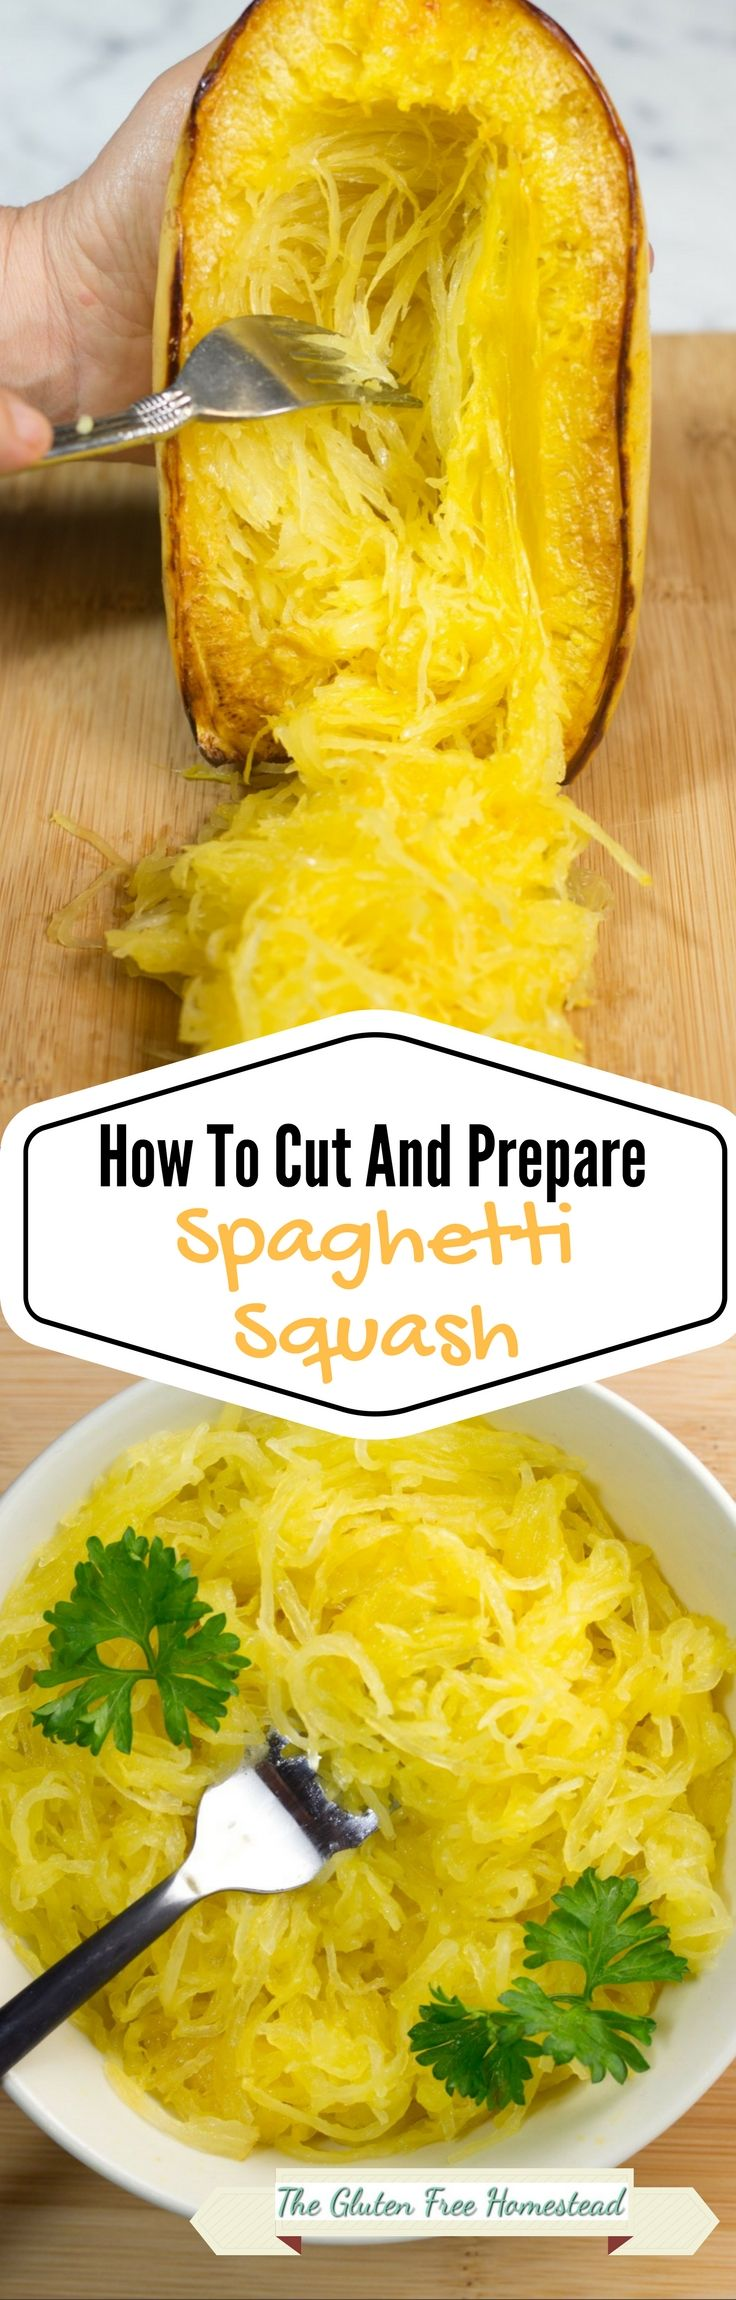 How to cut and prepare spaghetti squash with cooking tips and step by step photos, for a delicious spaghetti squash side dish.